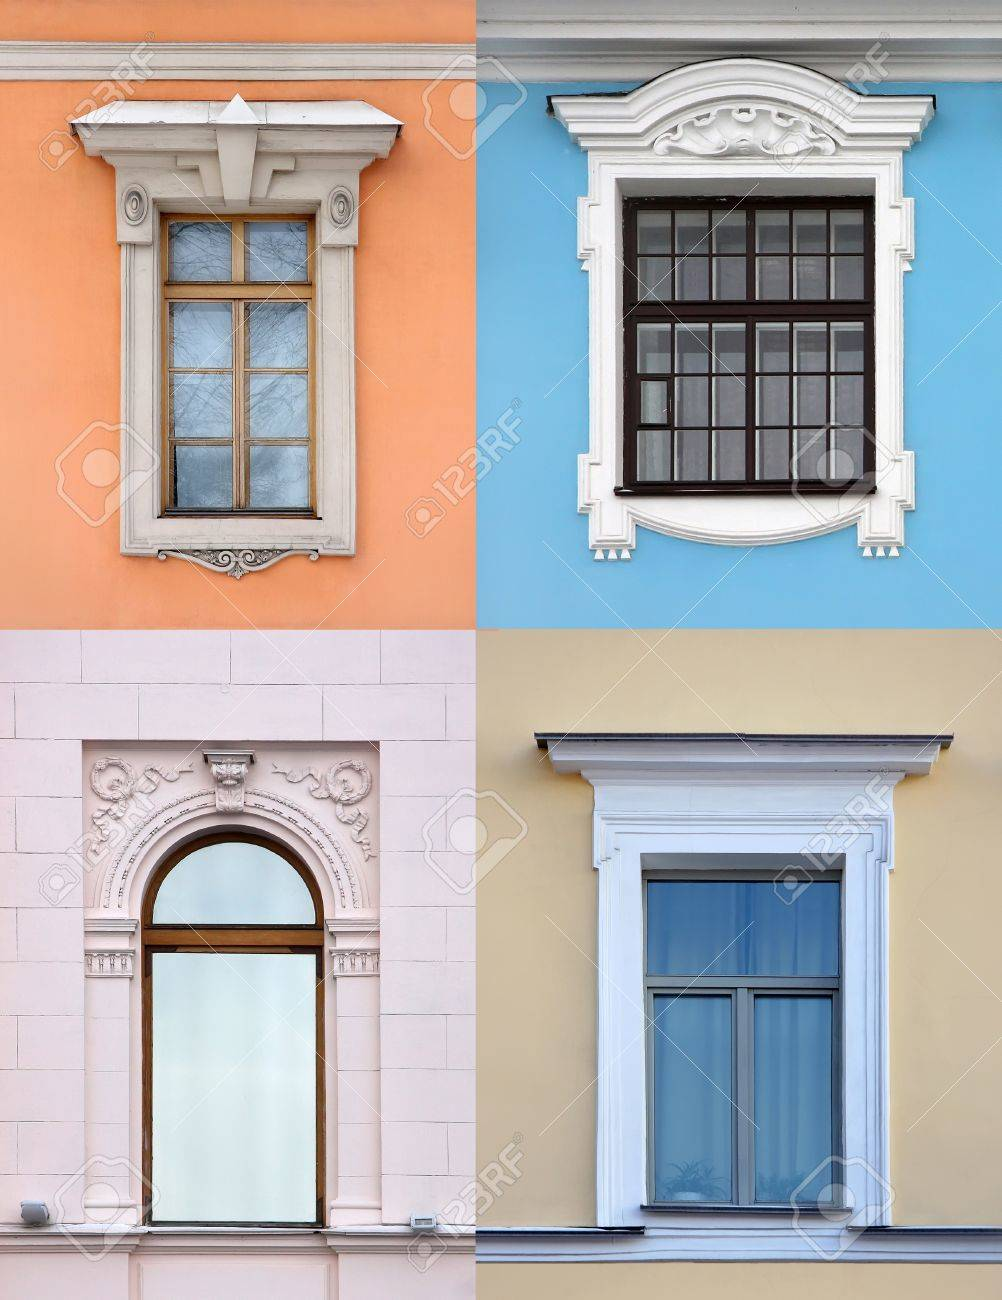 ollection Of Old Windows In Different rchitectural Styles Stock ... - ^